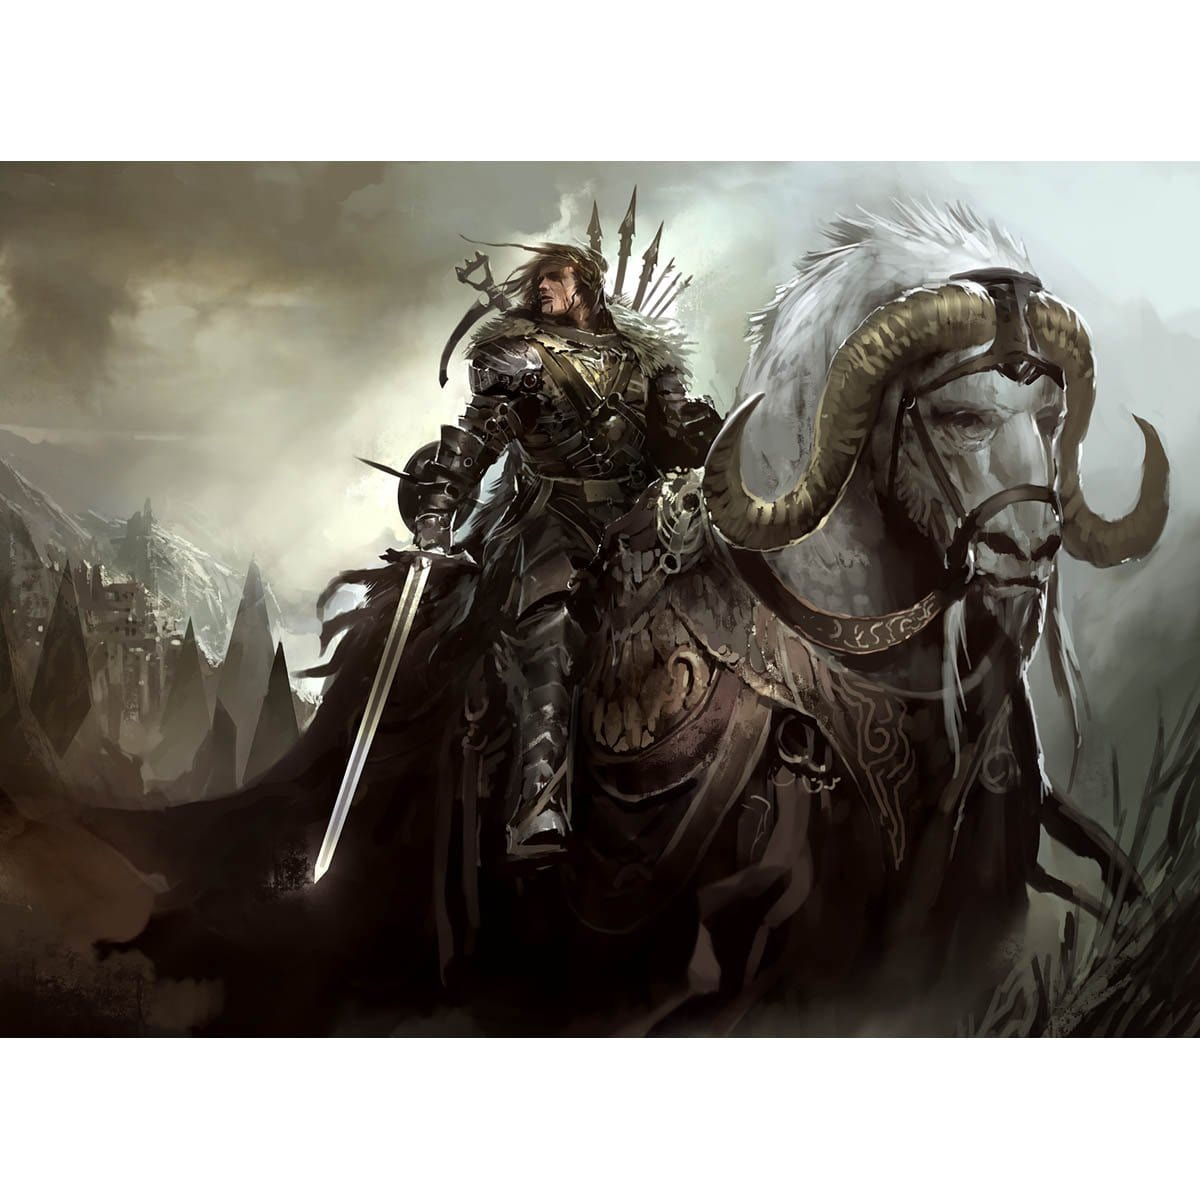 Ikiral Outrider Print - Print - Original Magic Art - Accessories for Magic the Gathering and other card games